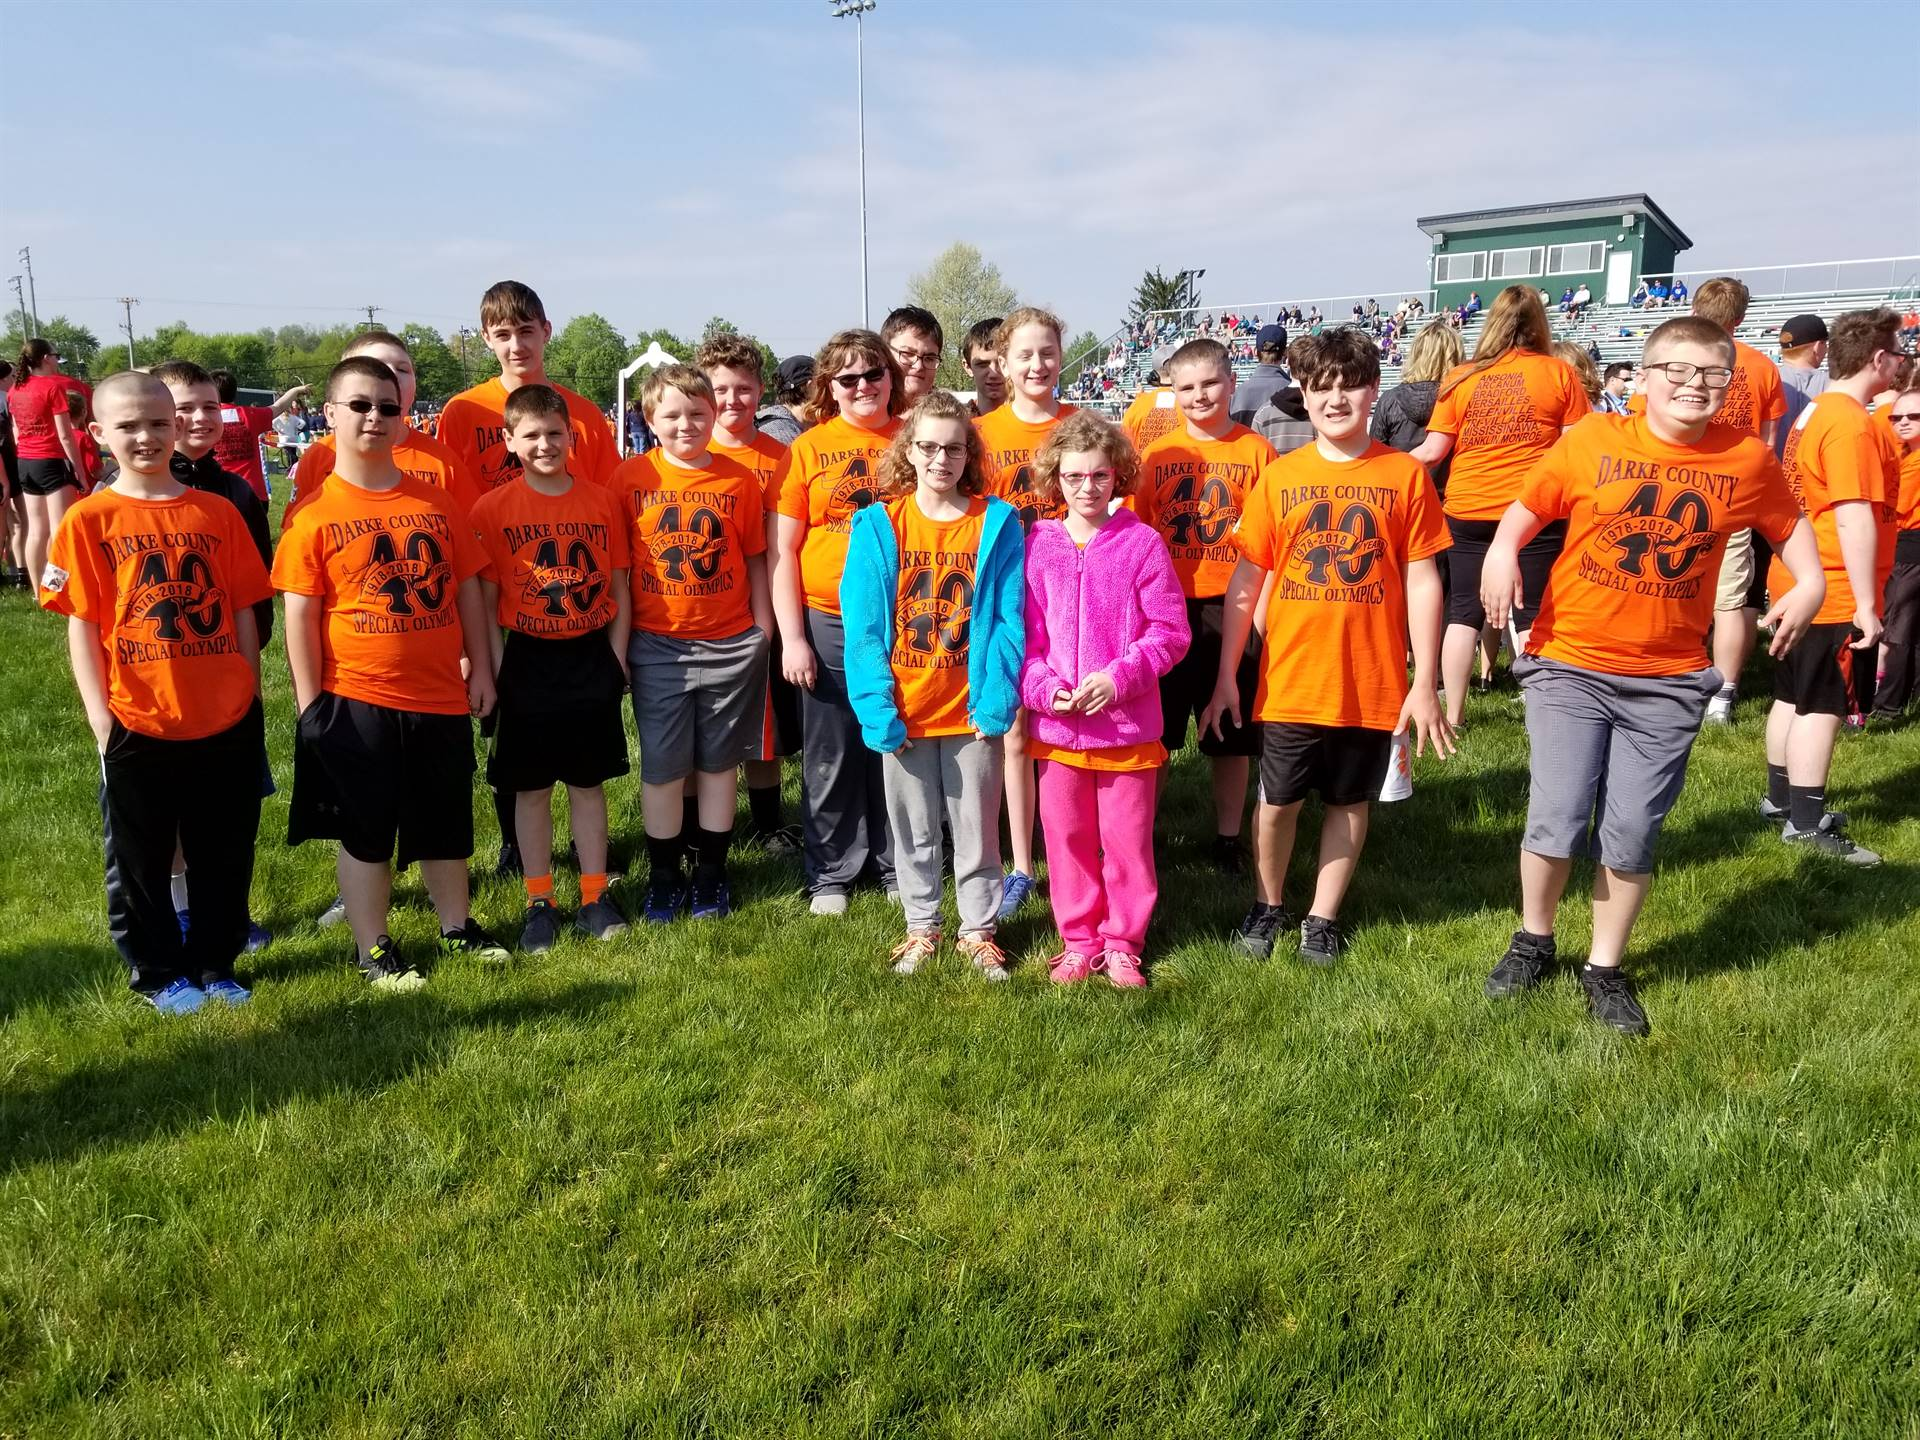 The crew at Special Olympics